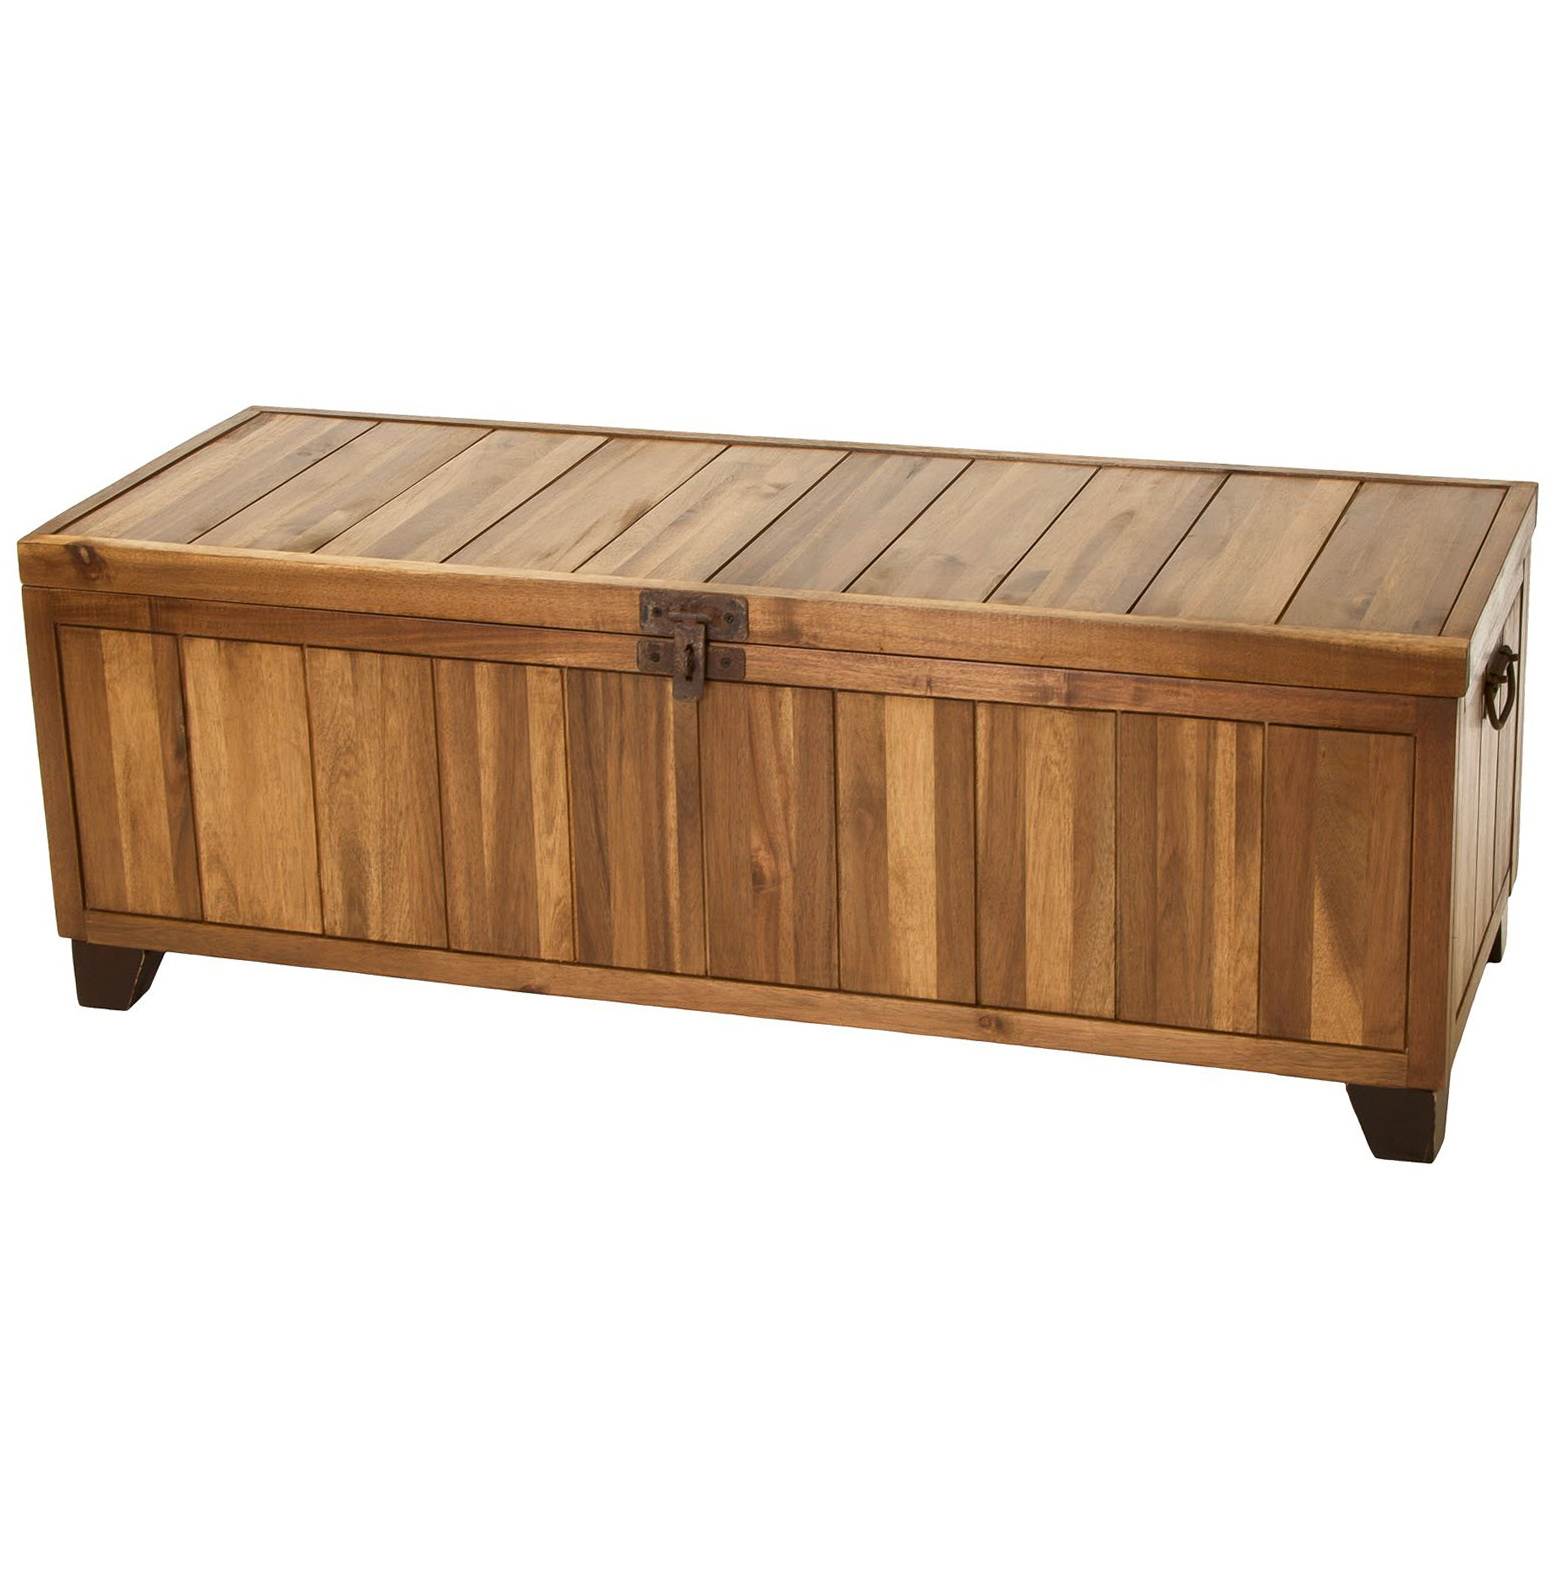 Rustic Wooden Storage Bench Home Design Ideas